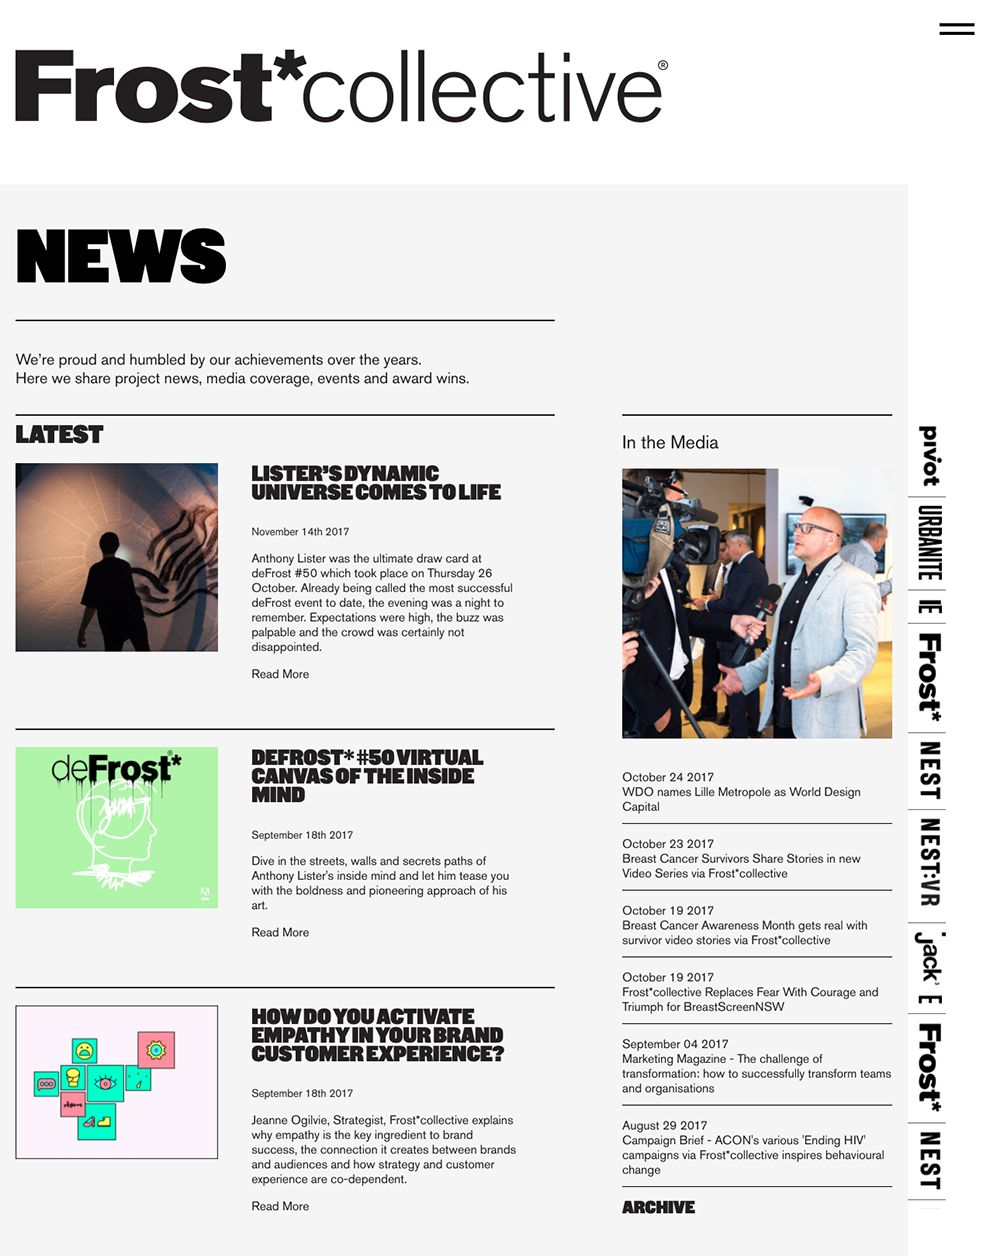 Frost Collective Great News Page